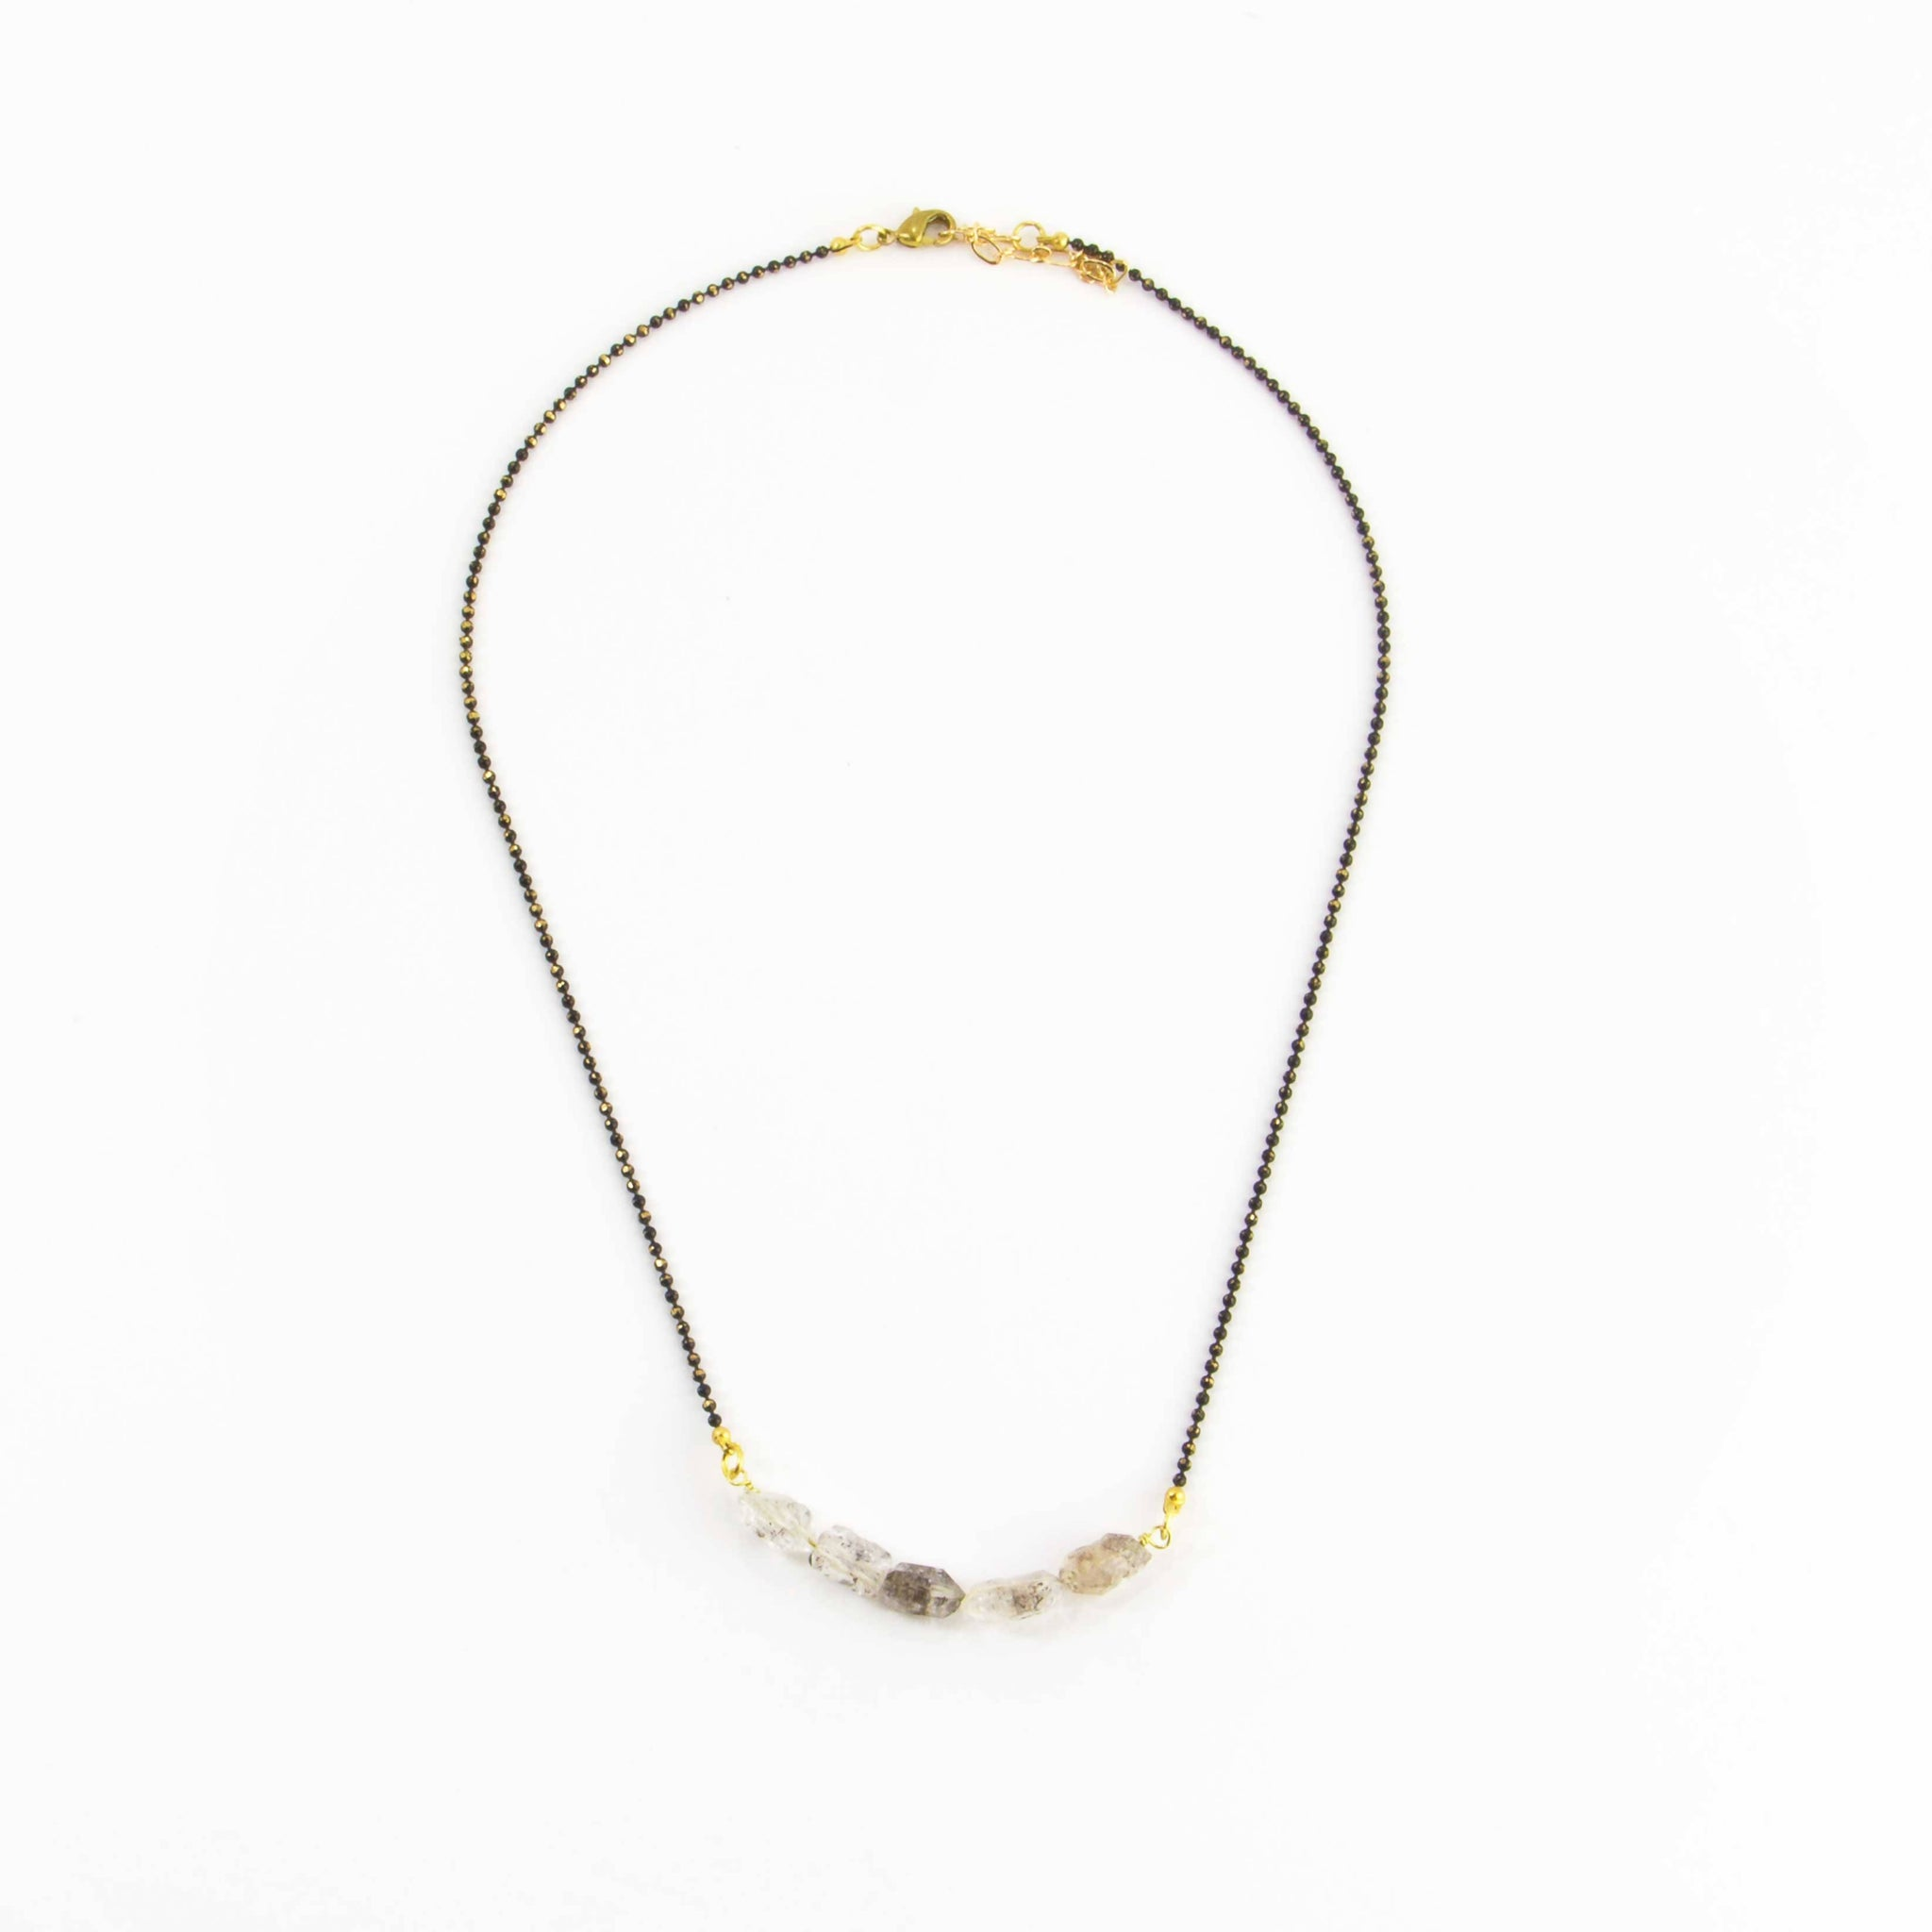 Herkamer Diamond Chunks Necklace